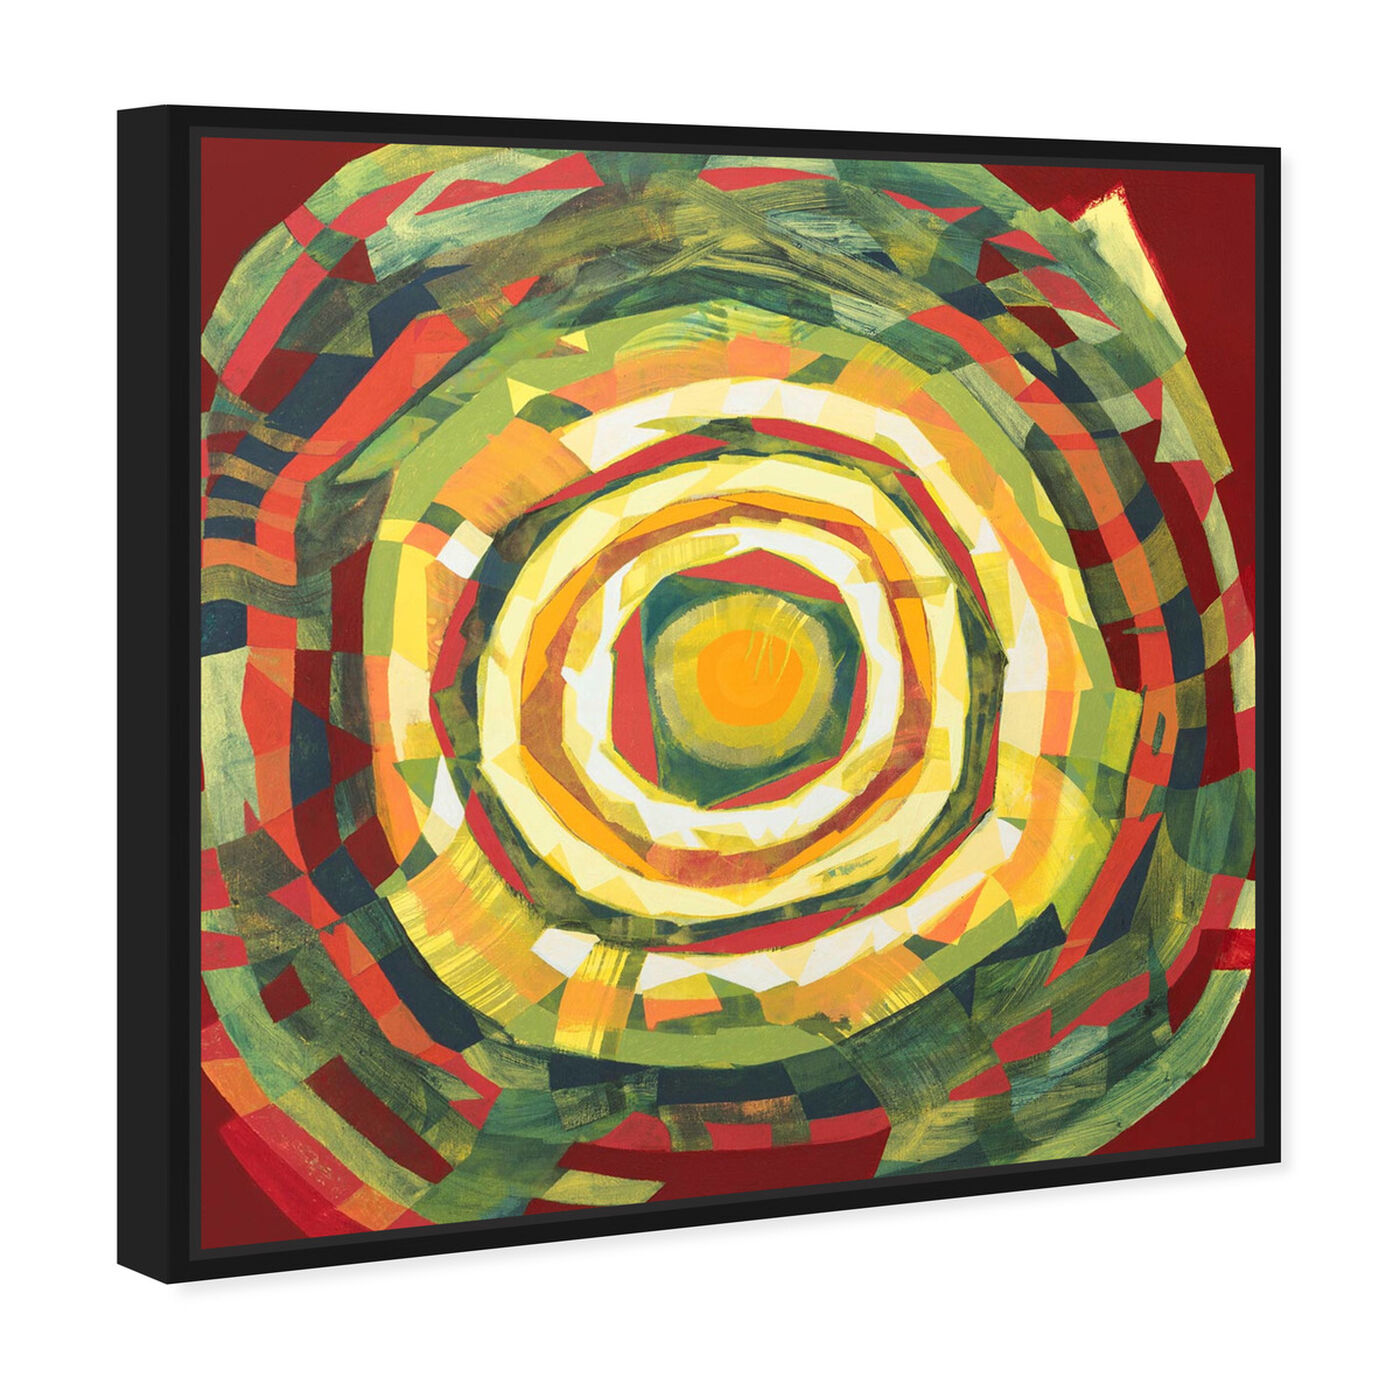 Angled view of Sai - Pictis Spiralis Natura 1NM1139 featuring abstract and geometric art.